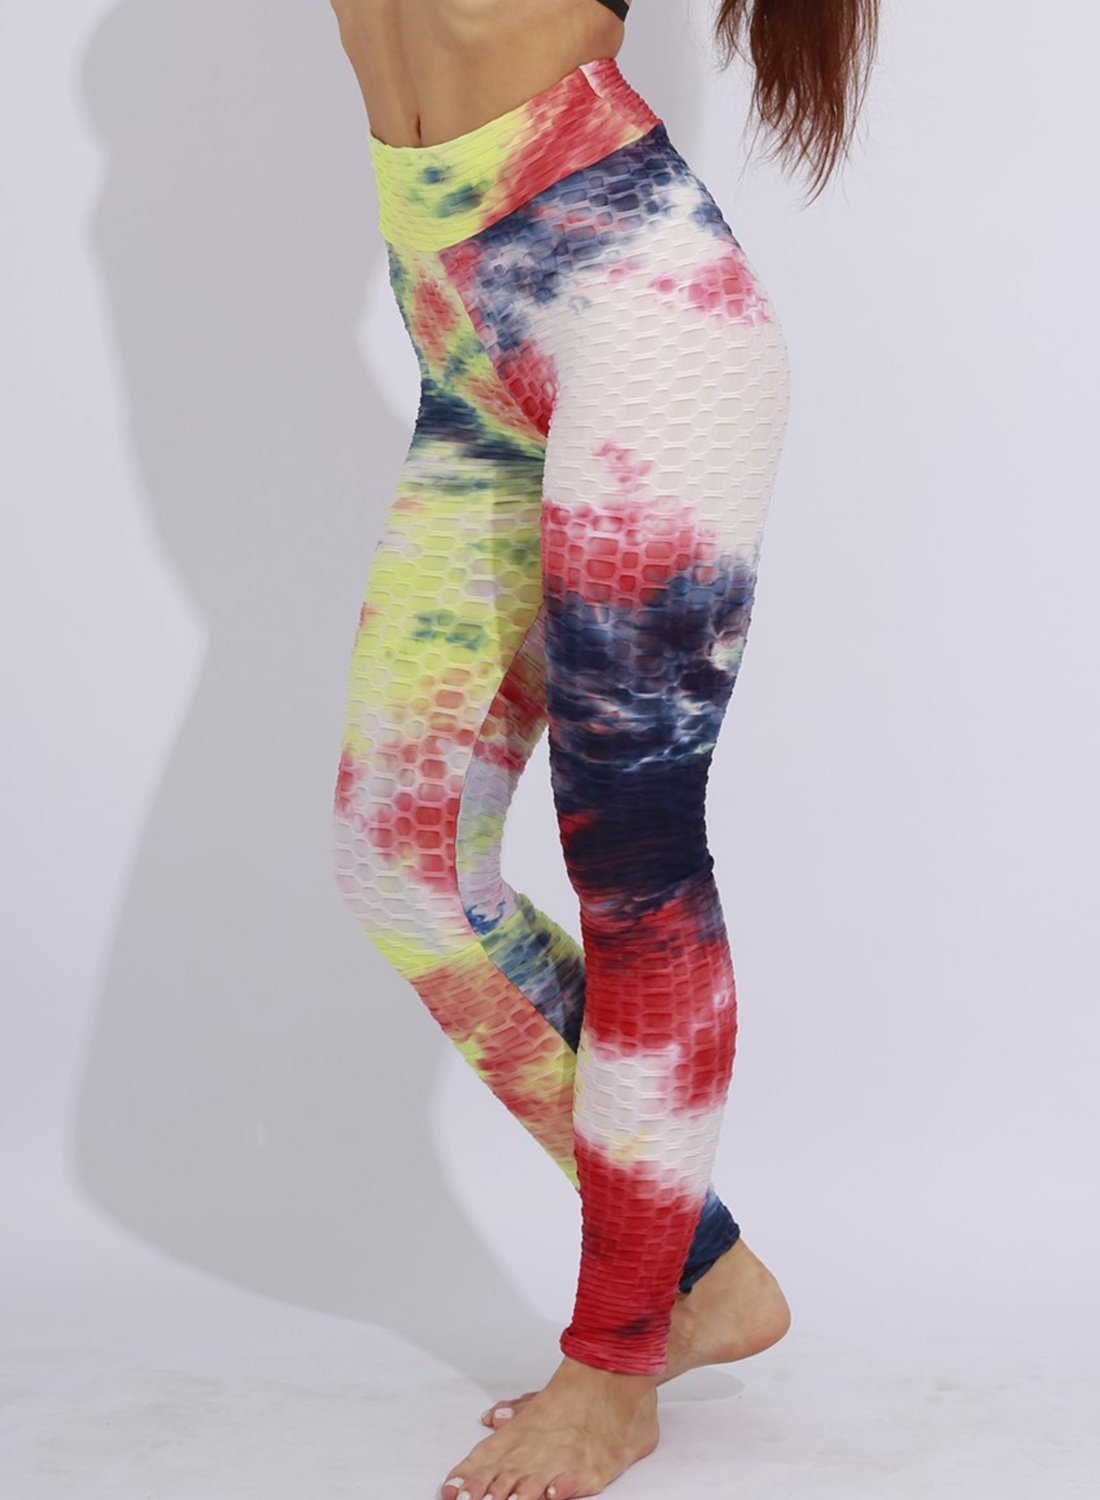 Fittoo Tie-dyed Textured Ruched Leggings Women Gym Sports Leggings